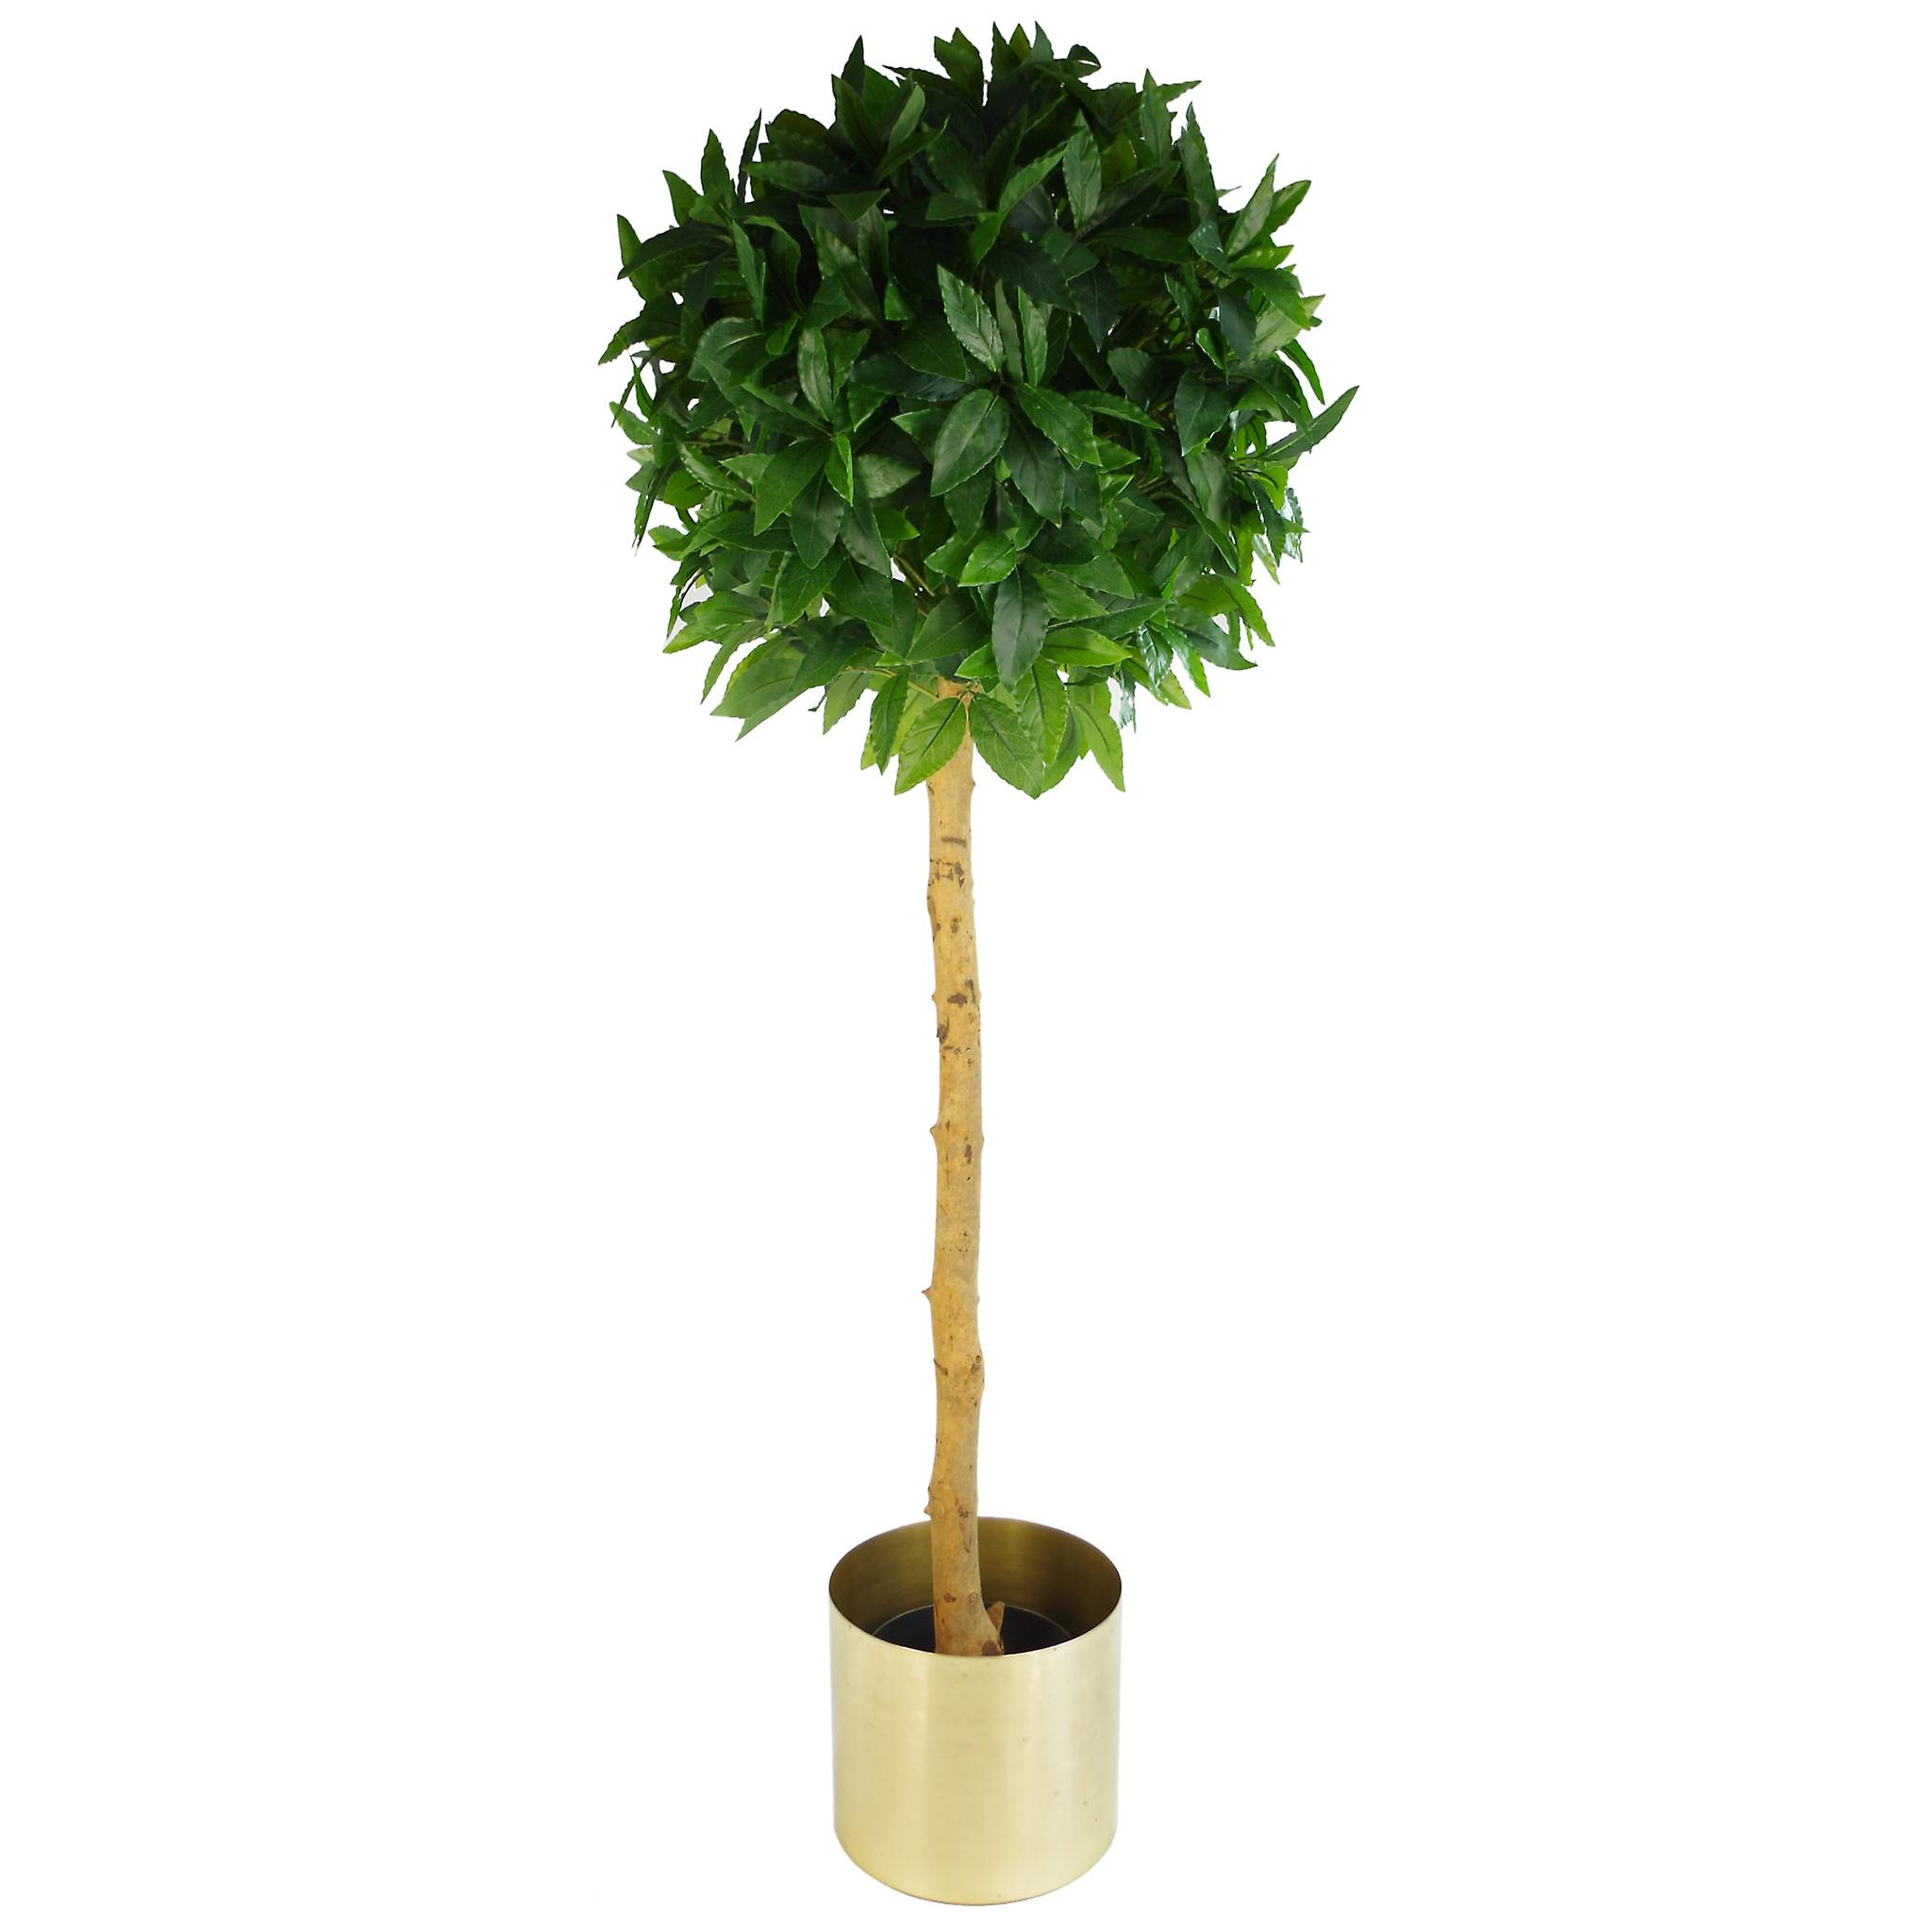 Leaf Metal Planter Plant Pot with Brushed Brass Finish 20 x 18cm